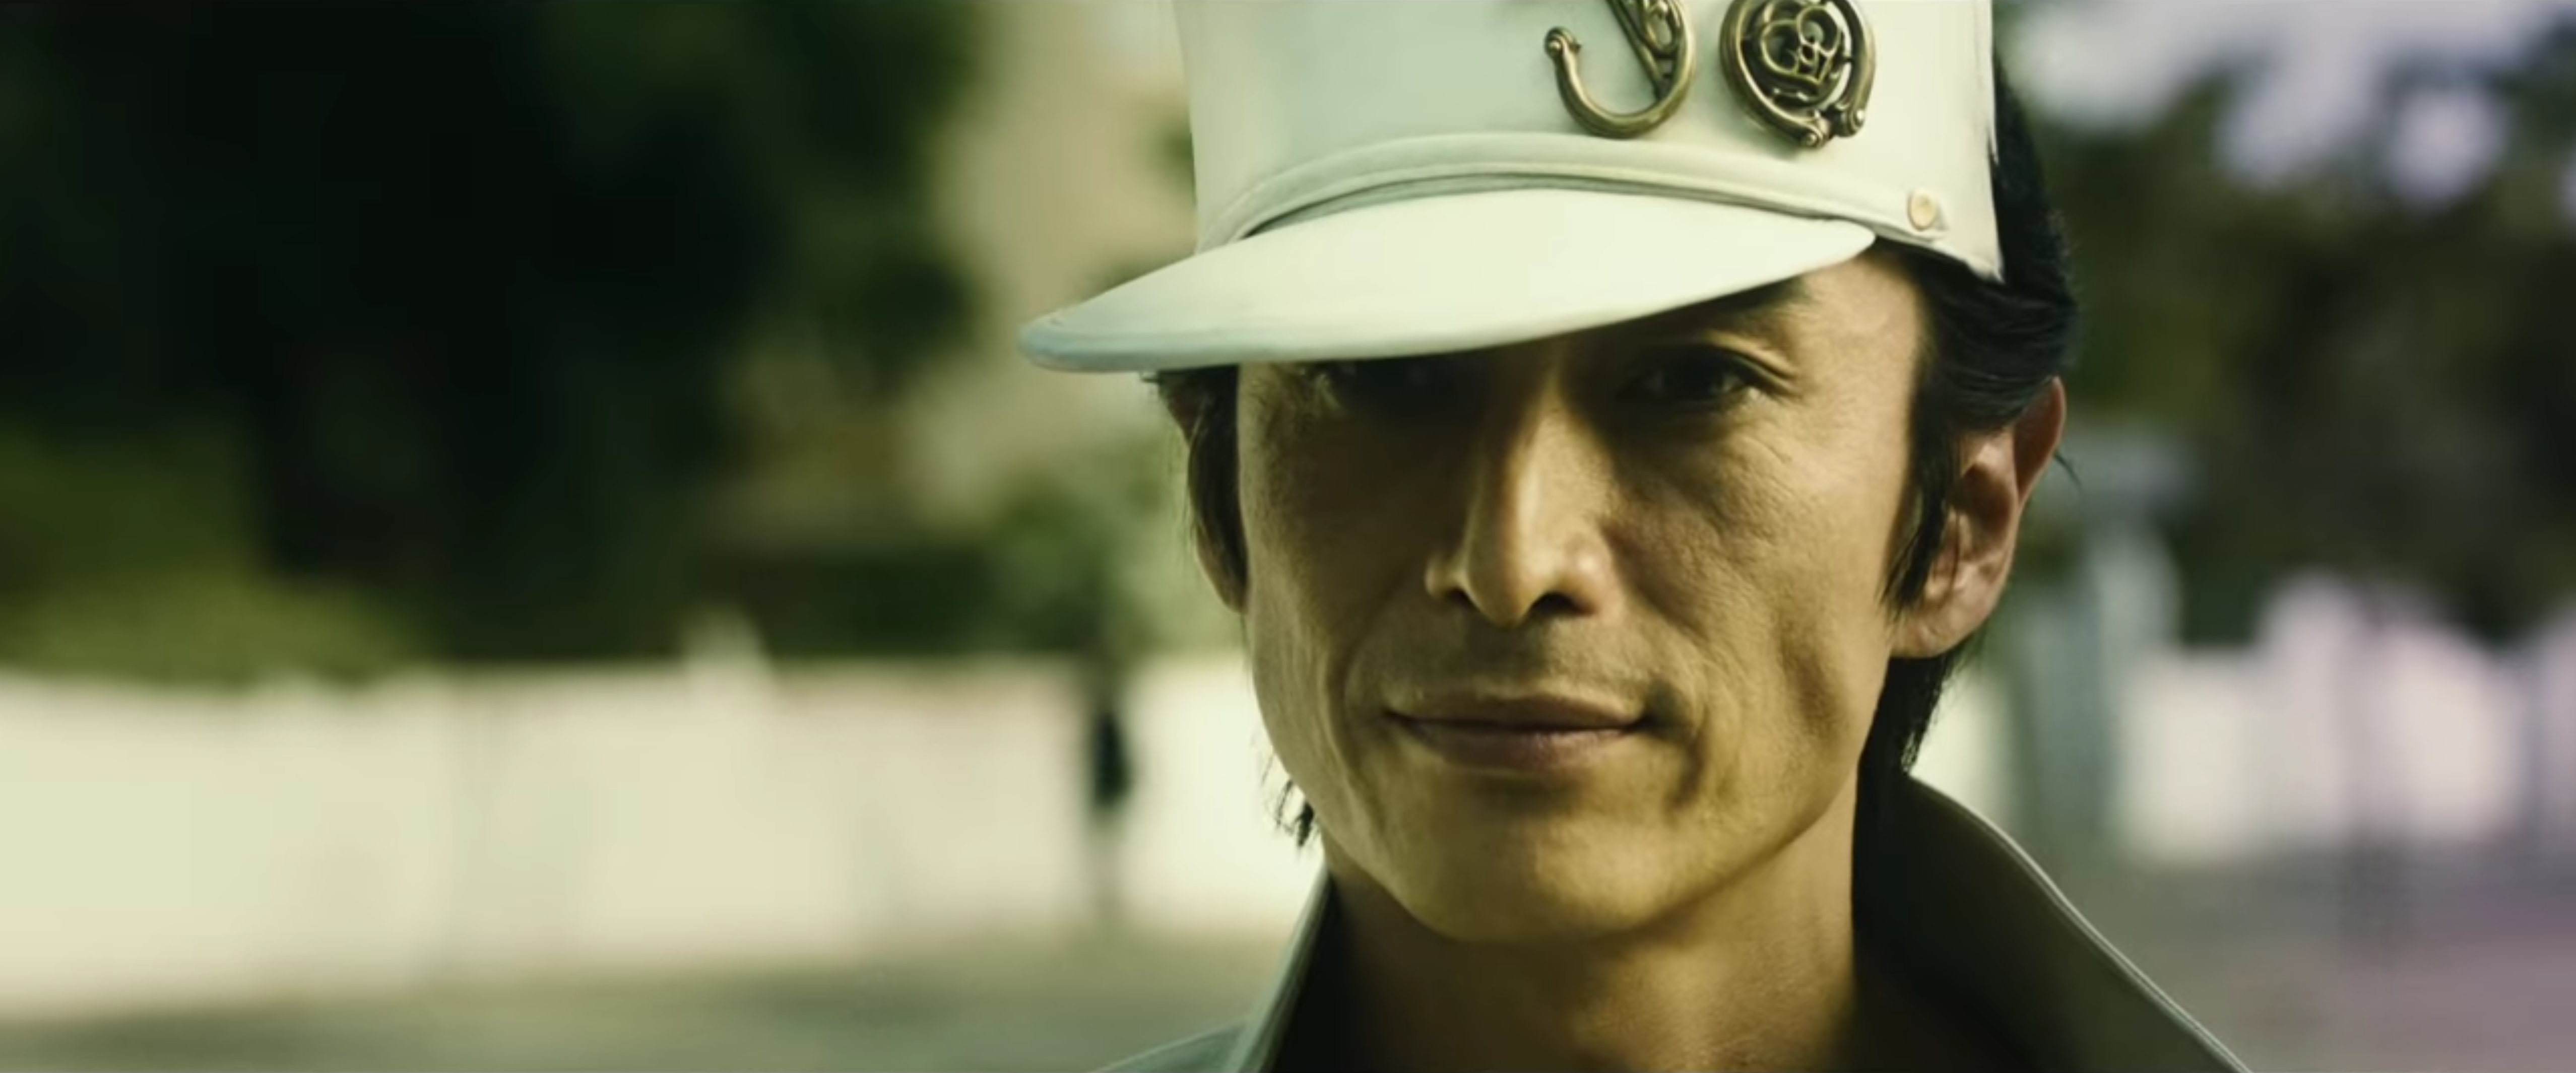 Here's The First Jojo's Bizarre Adventure Live-Action Movie Teaser